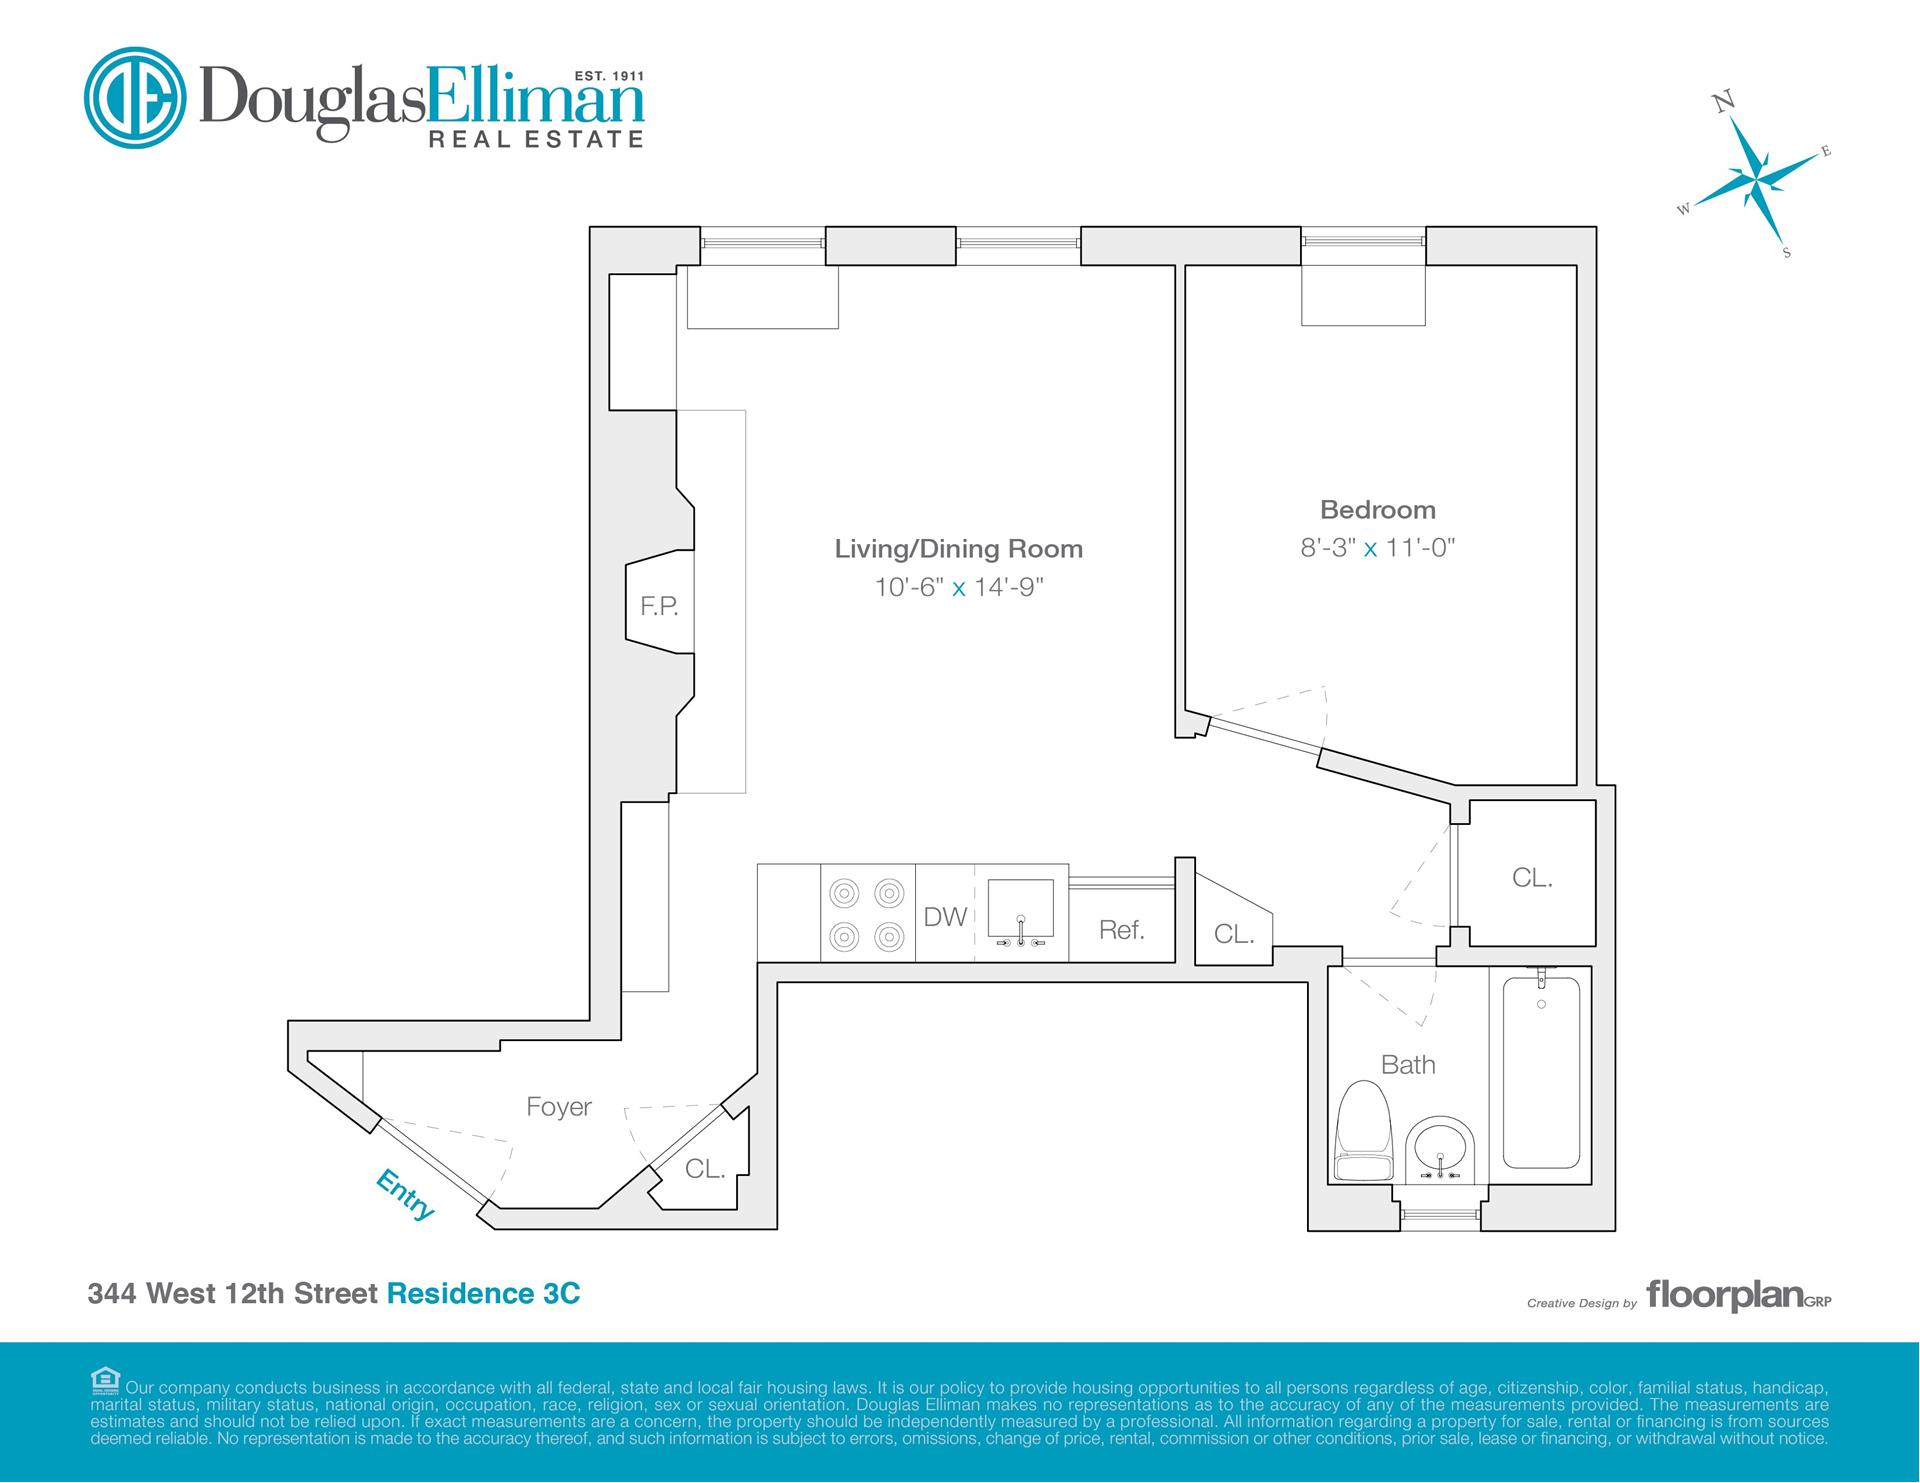 Floor plan of 344 W. 12 ST. OWNER, 344 West 12th St, 3C - West Village - Meatpacking District, New York